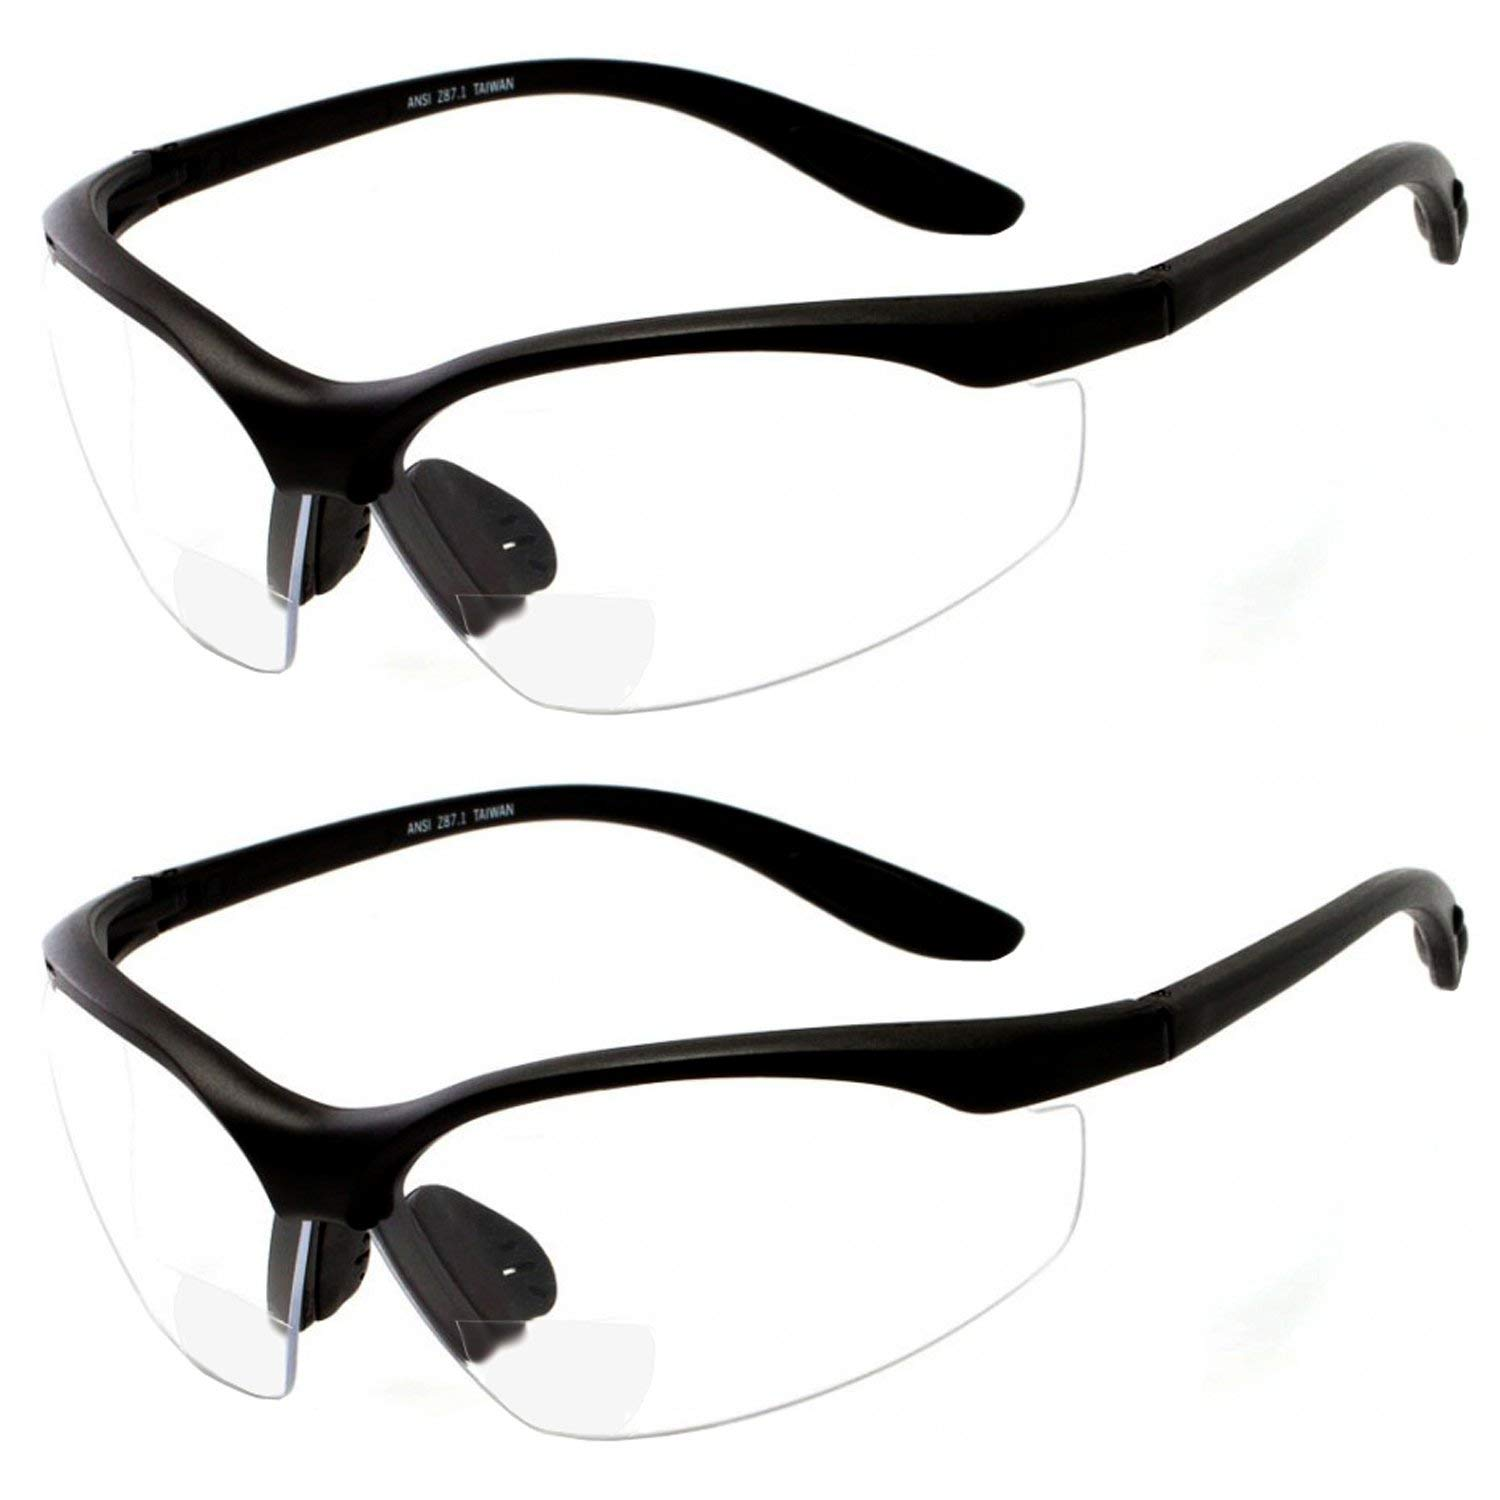 9255287a4229 Get Quotations · 2 Pairs Bifocal Safety Glasses Clear Lens with Reading  Corner - Non-Slip Rubber Grip